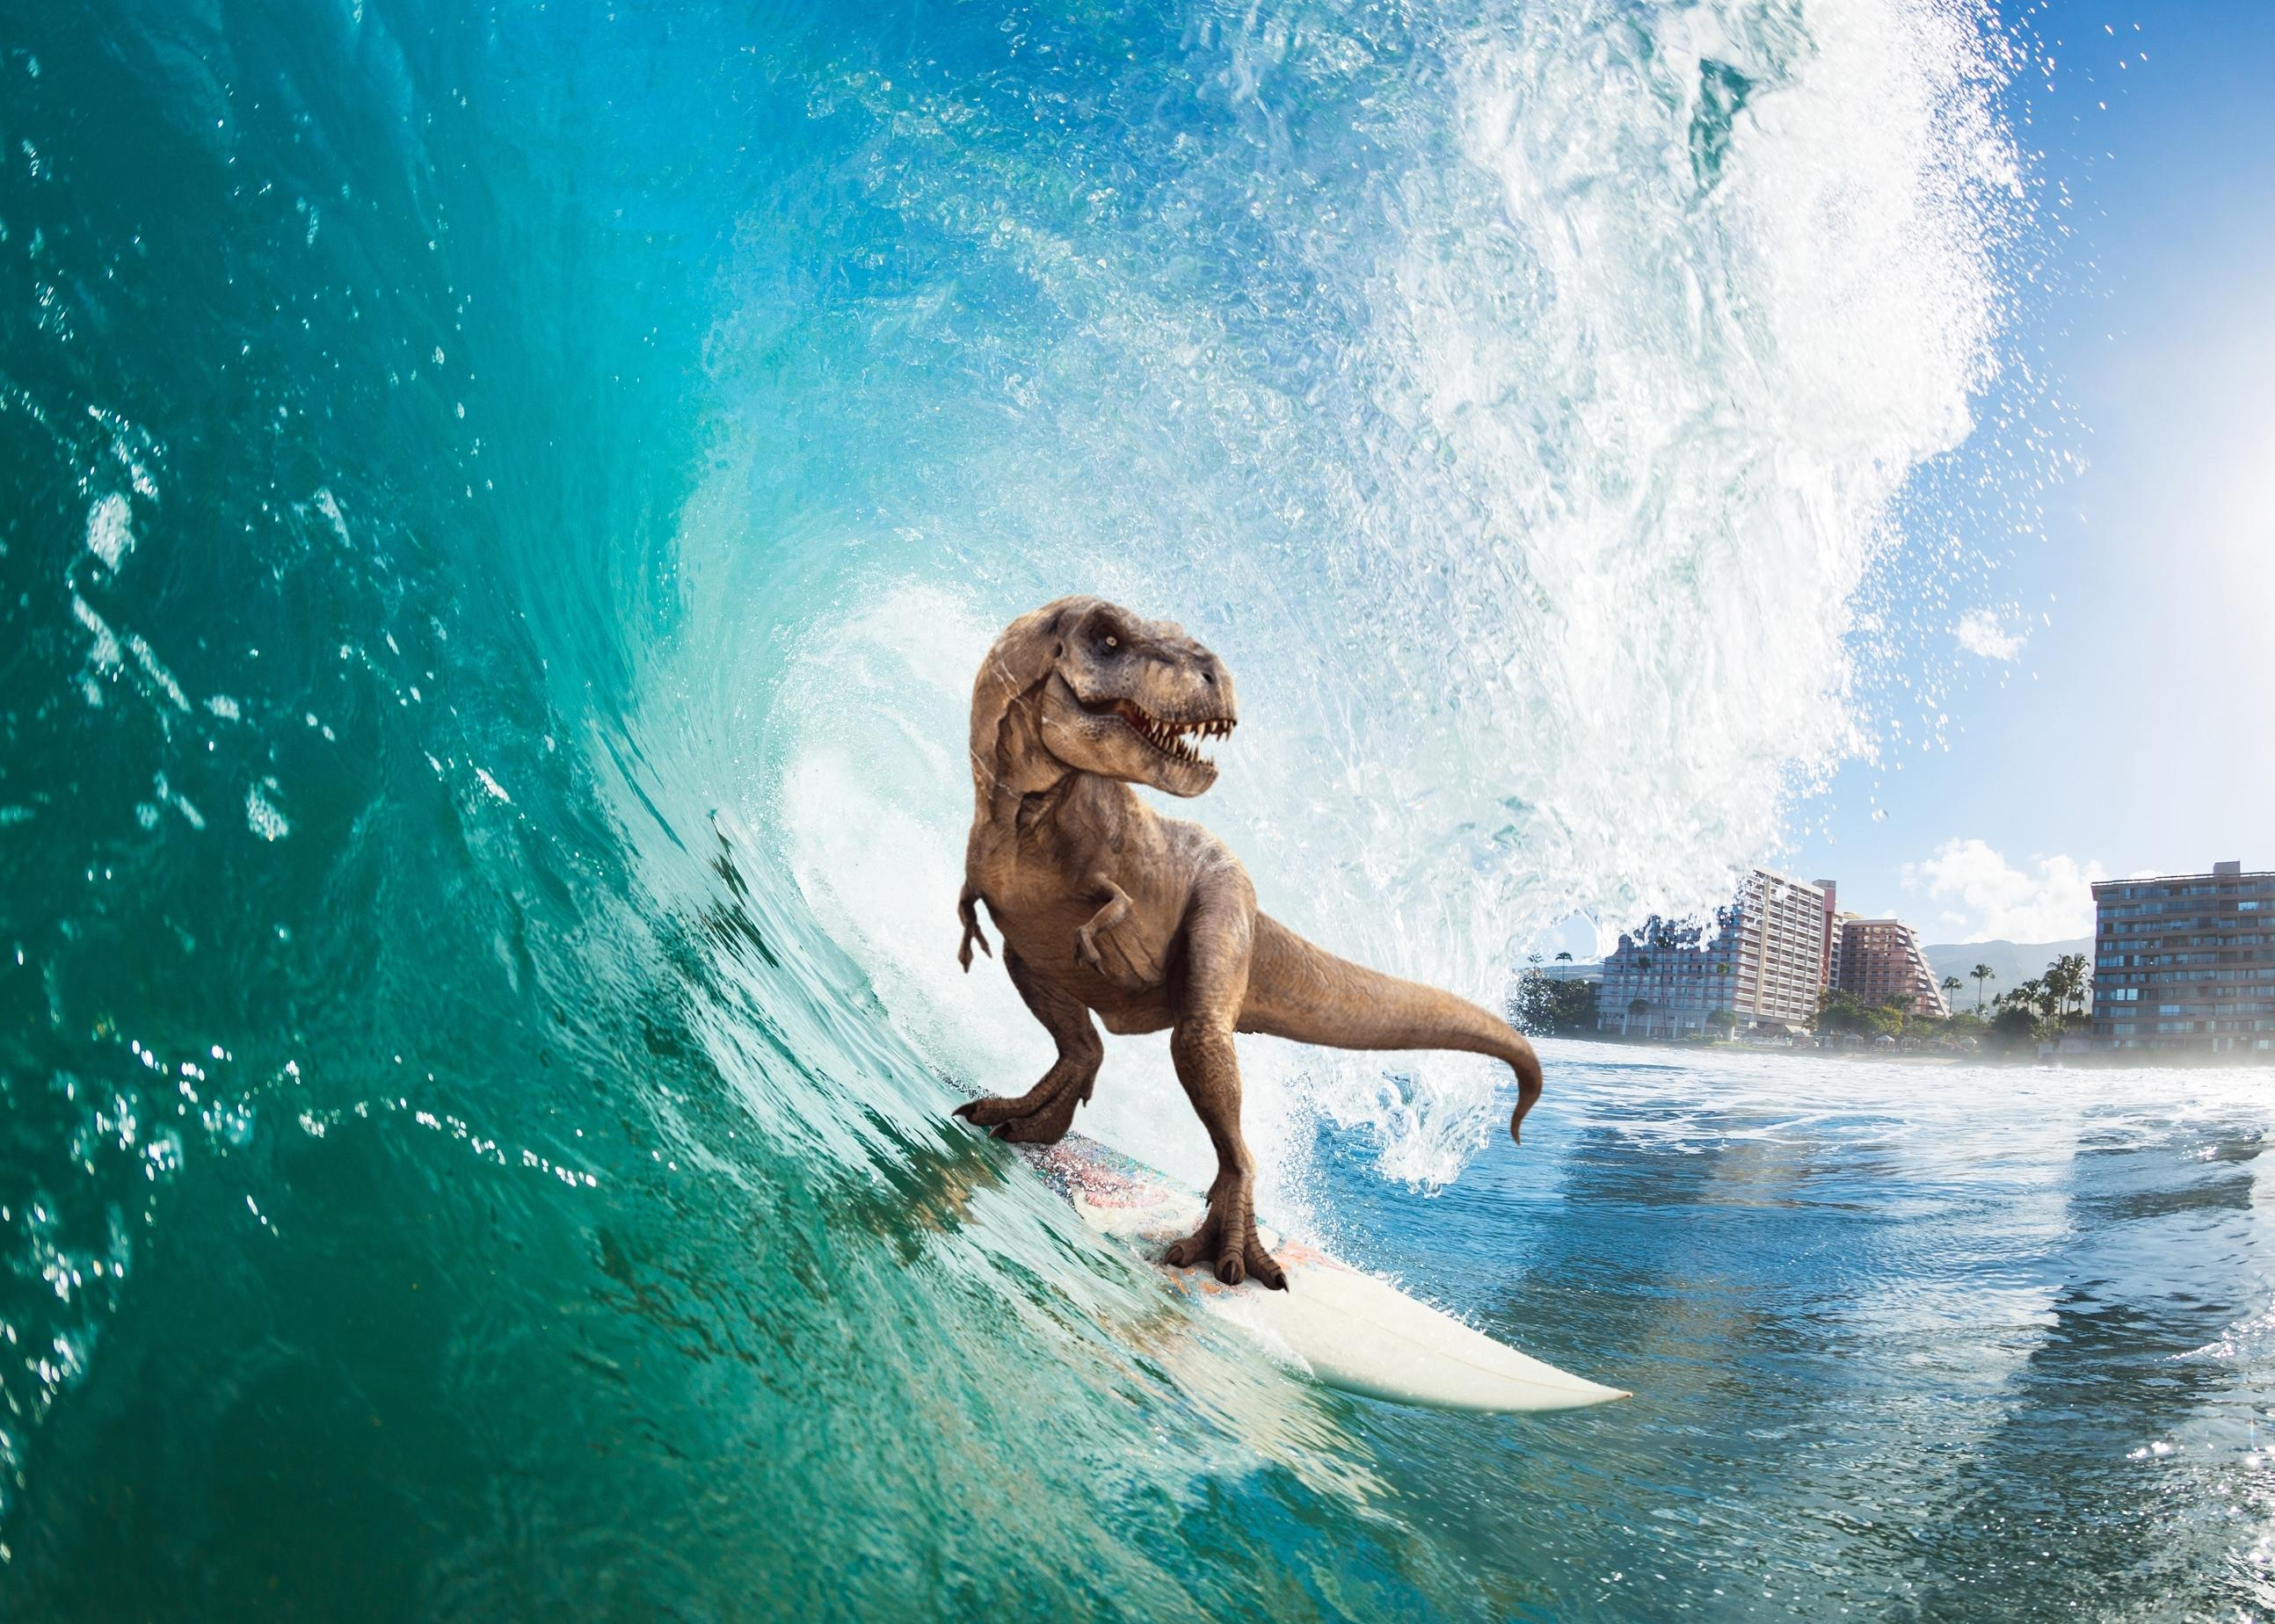 Surfing T Rex Hd Others 4k Wallpapers Images Backgrounds